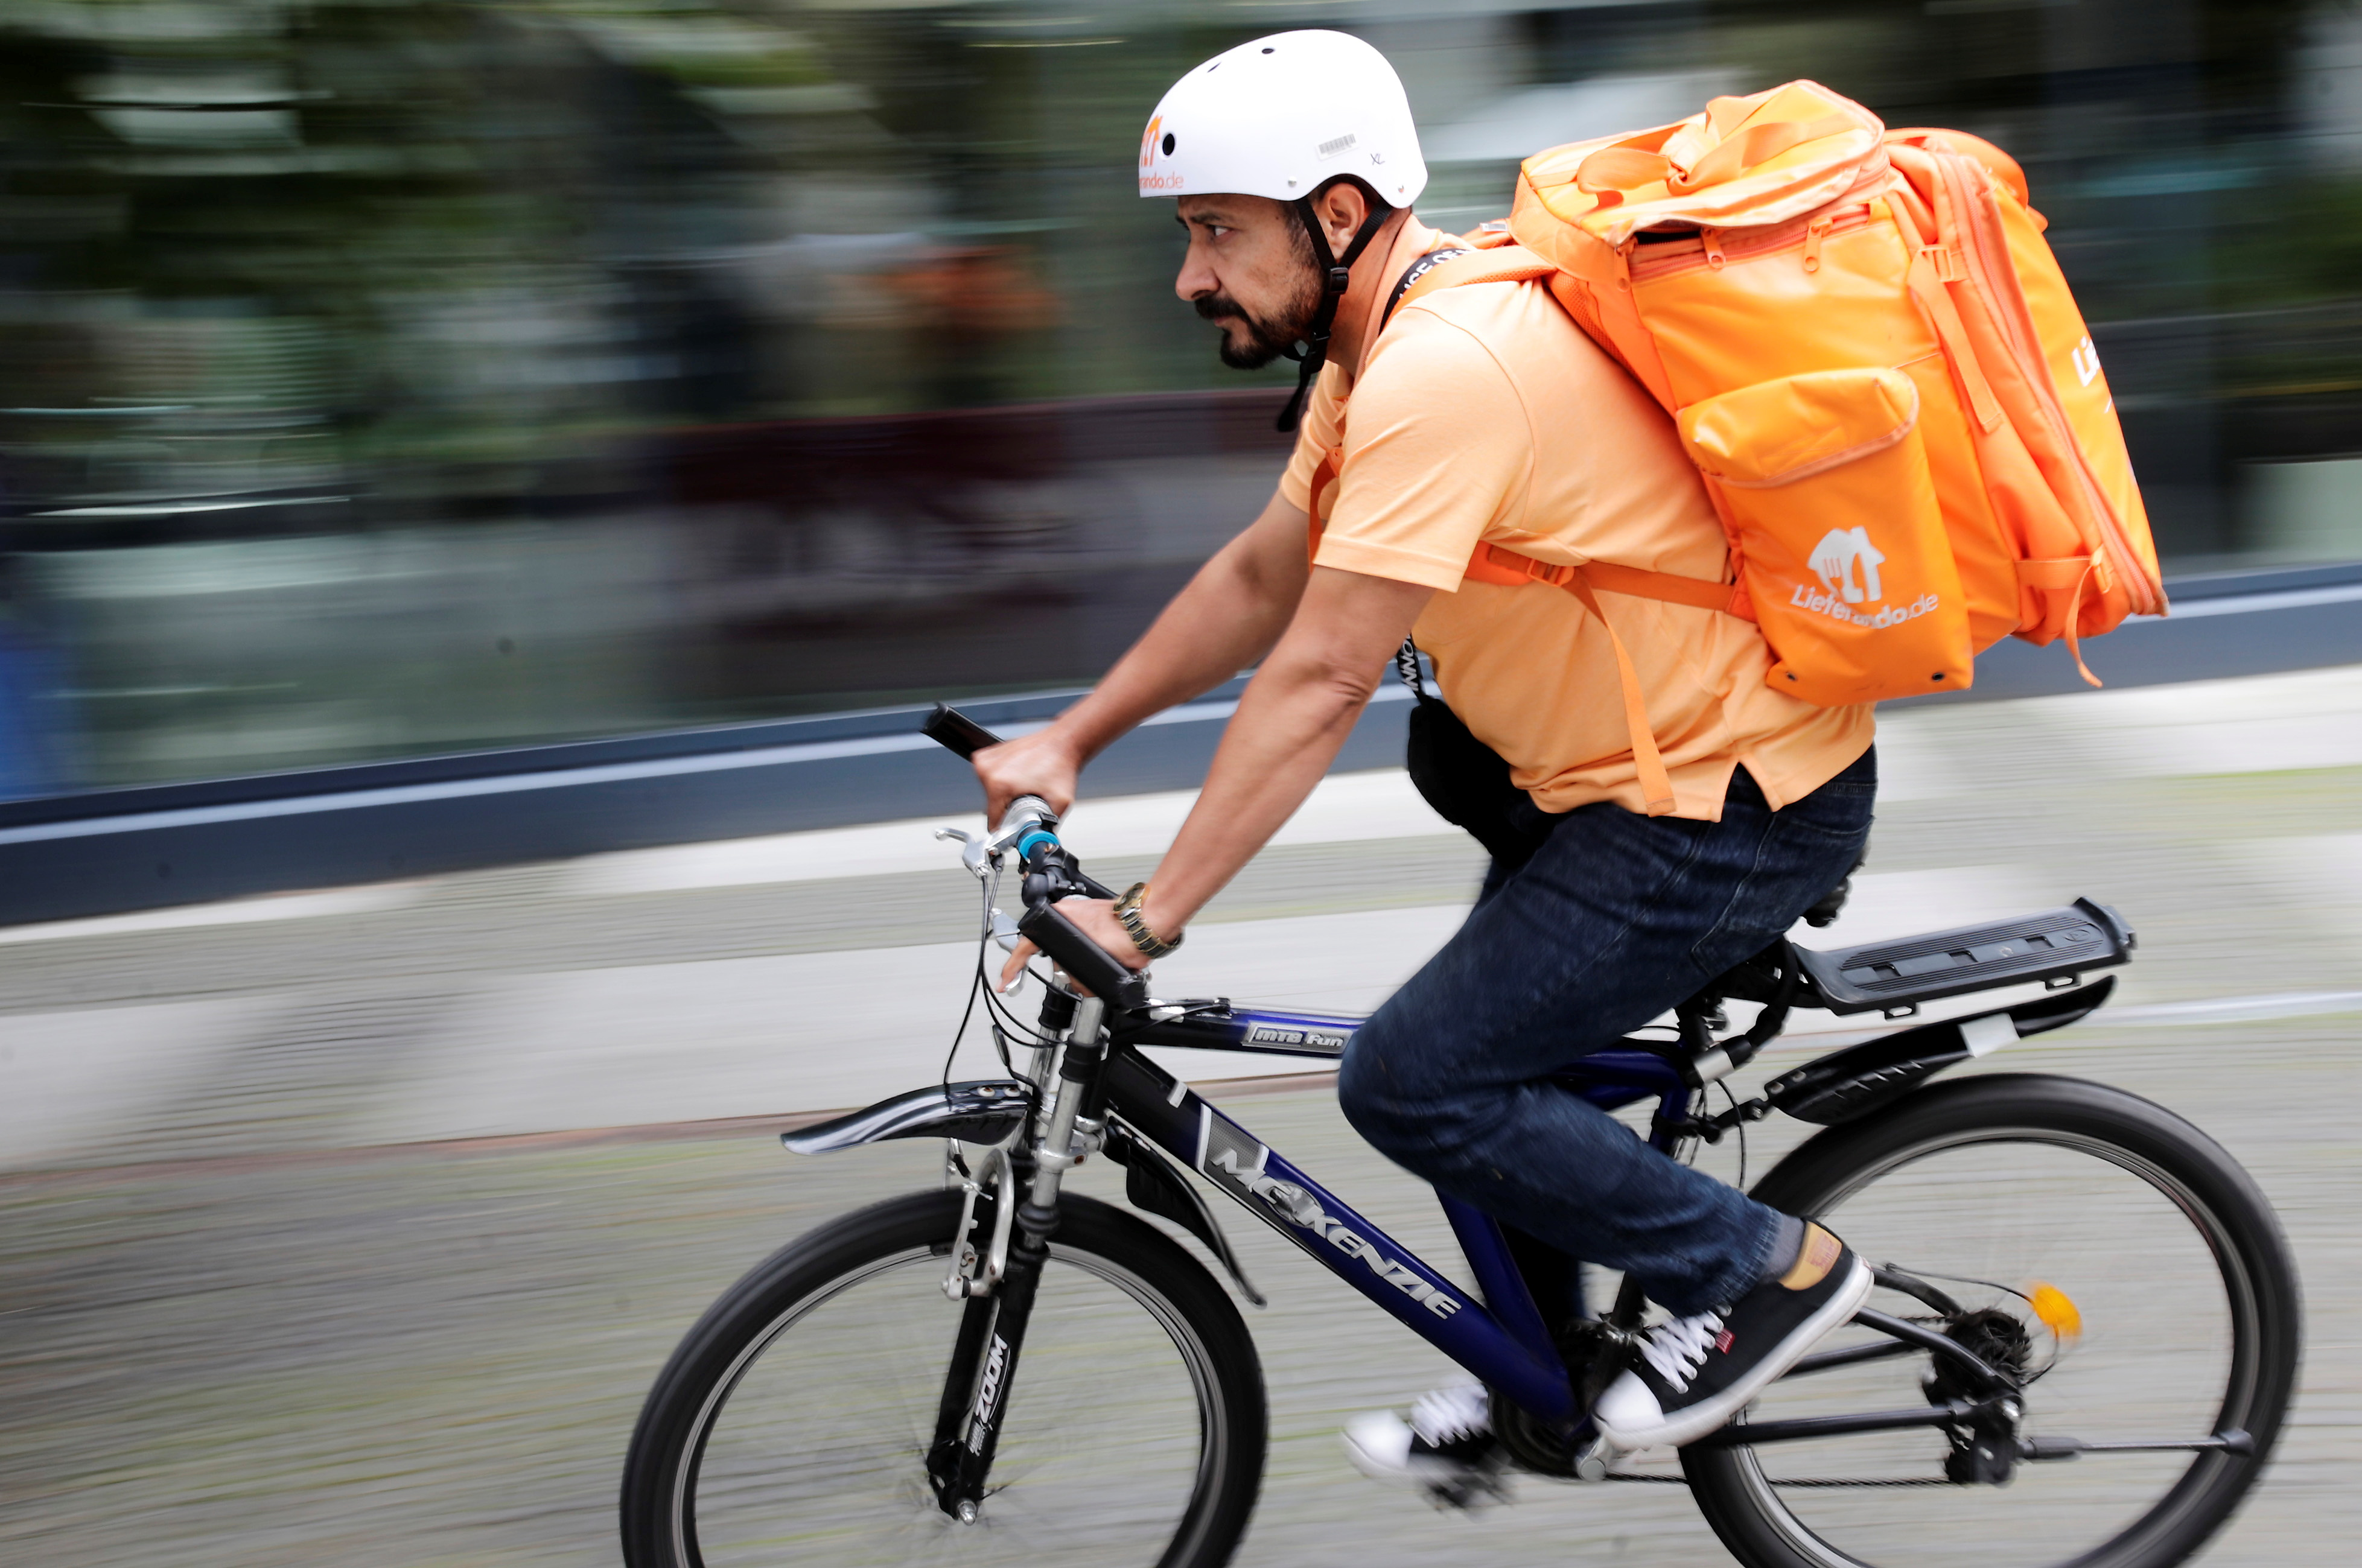 Former Afghan Communication Minister Sayed Sadaat rides a bicycle for his food delivery service job with Lieferando in Leipzig, Germany, August 26, 2021. REUTERS/Hannibal Hanschke